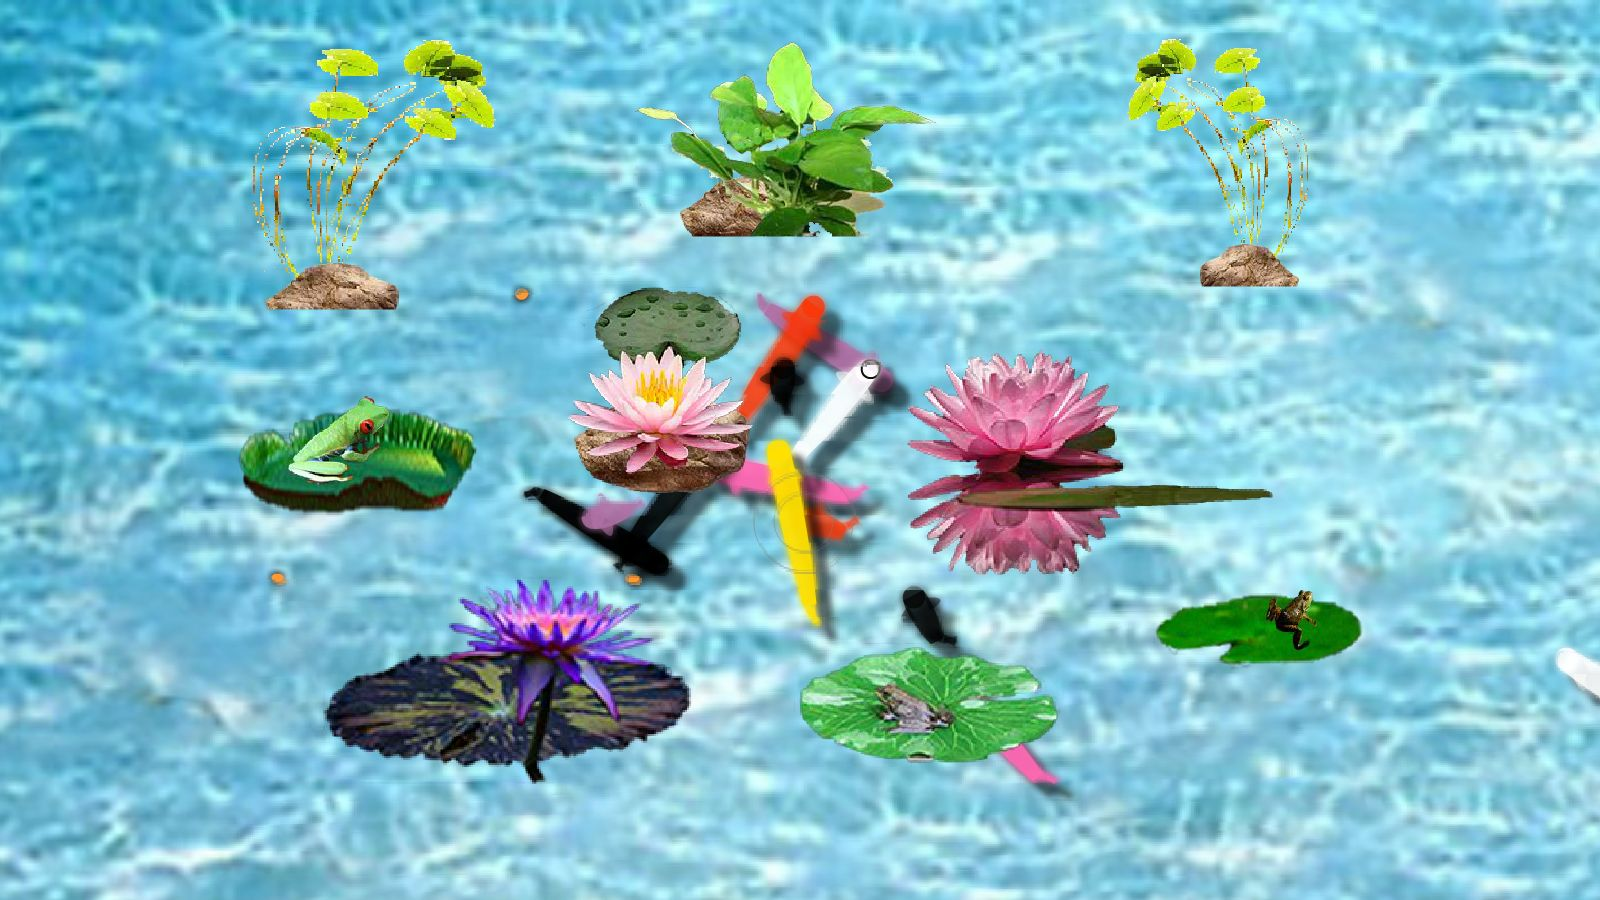 Interactive fish pond game download 11street malaysia for Koi pond game online